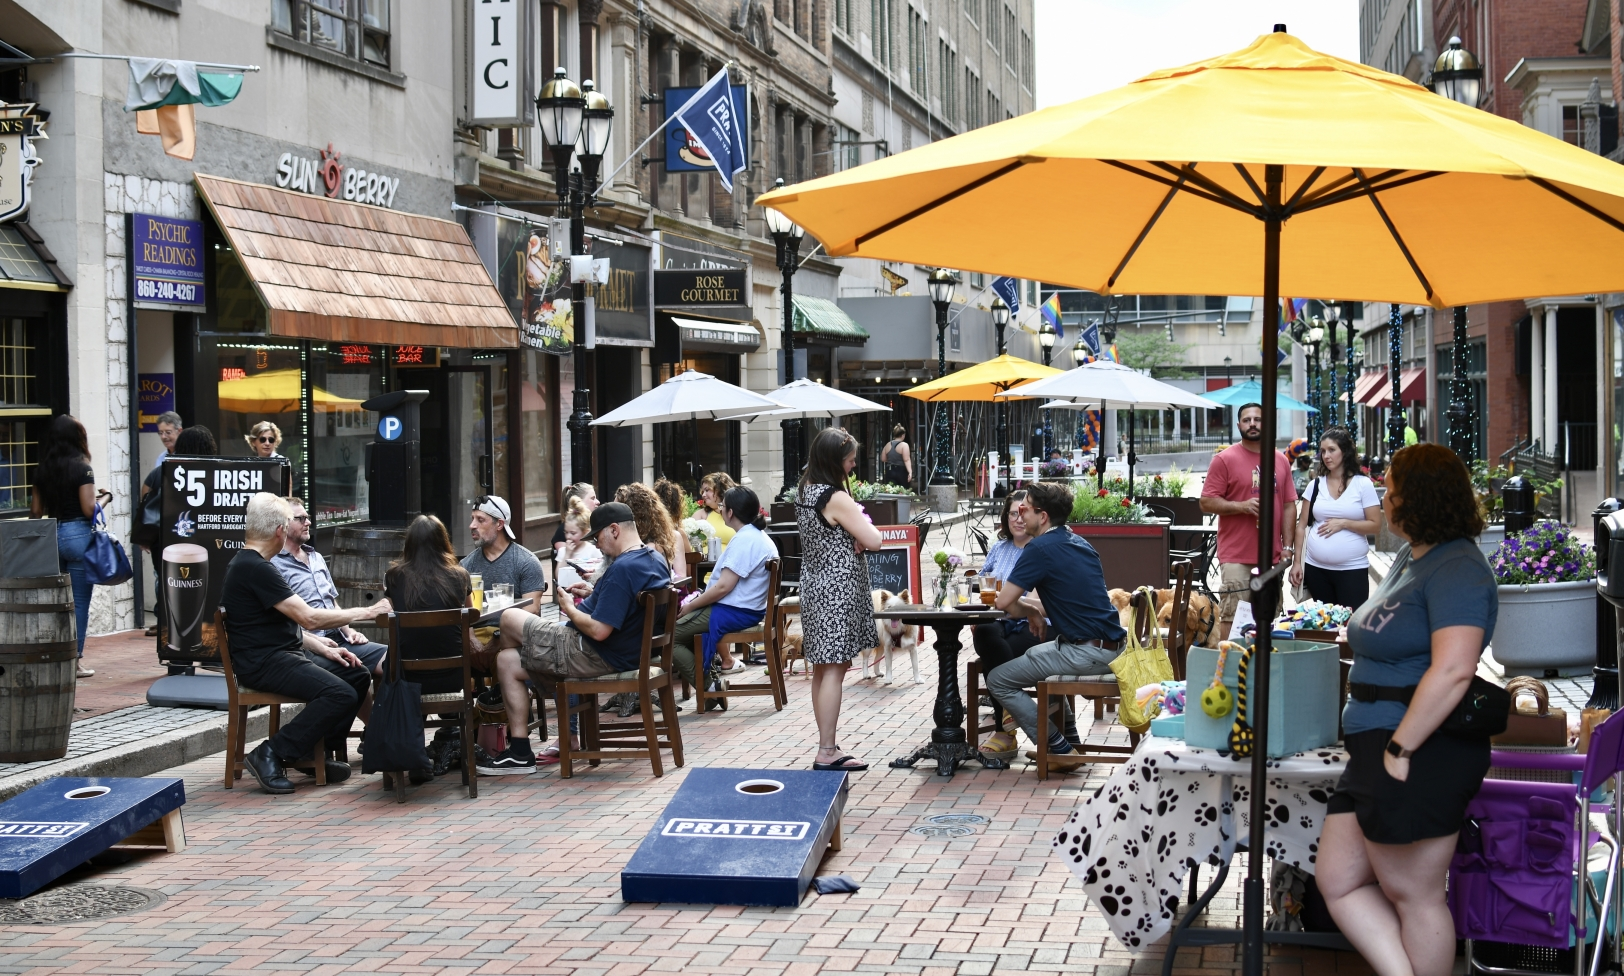 People sitting at tables on Pratt Street with cornhole boards in the foreground.